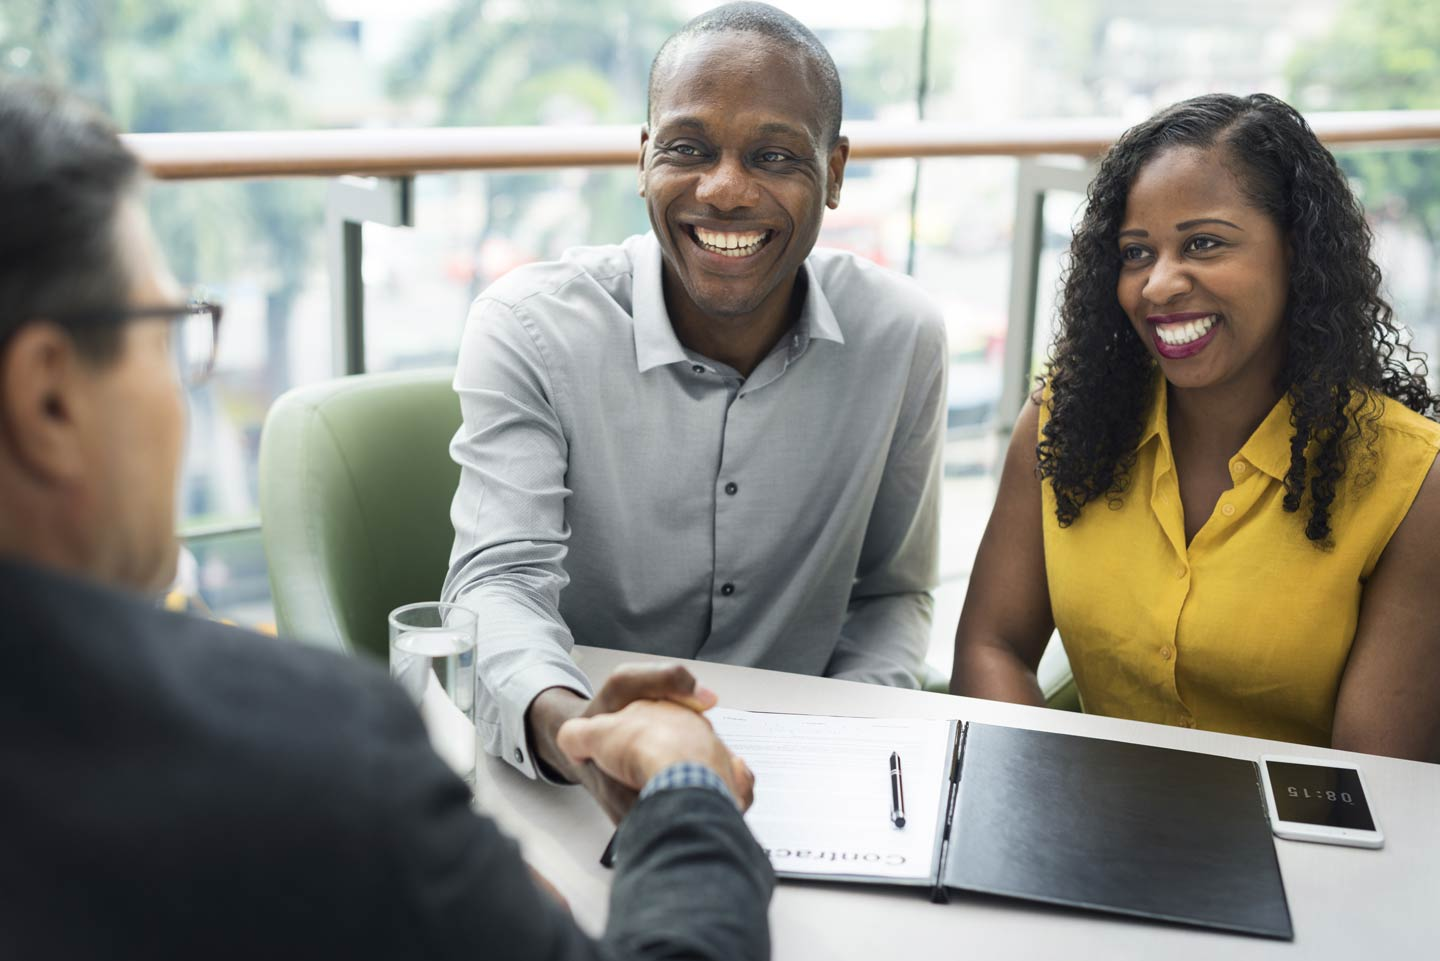 Why Should You Work With a Financial Professional?